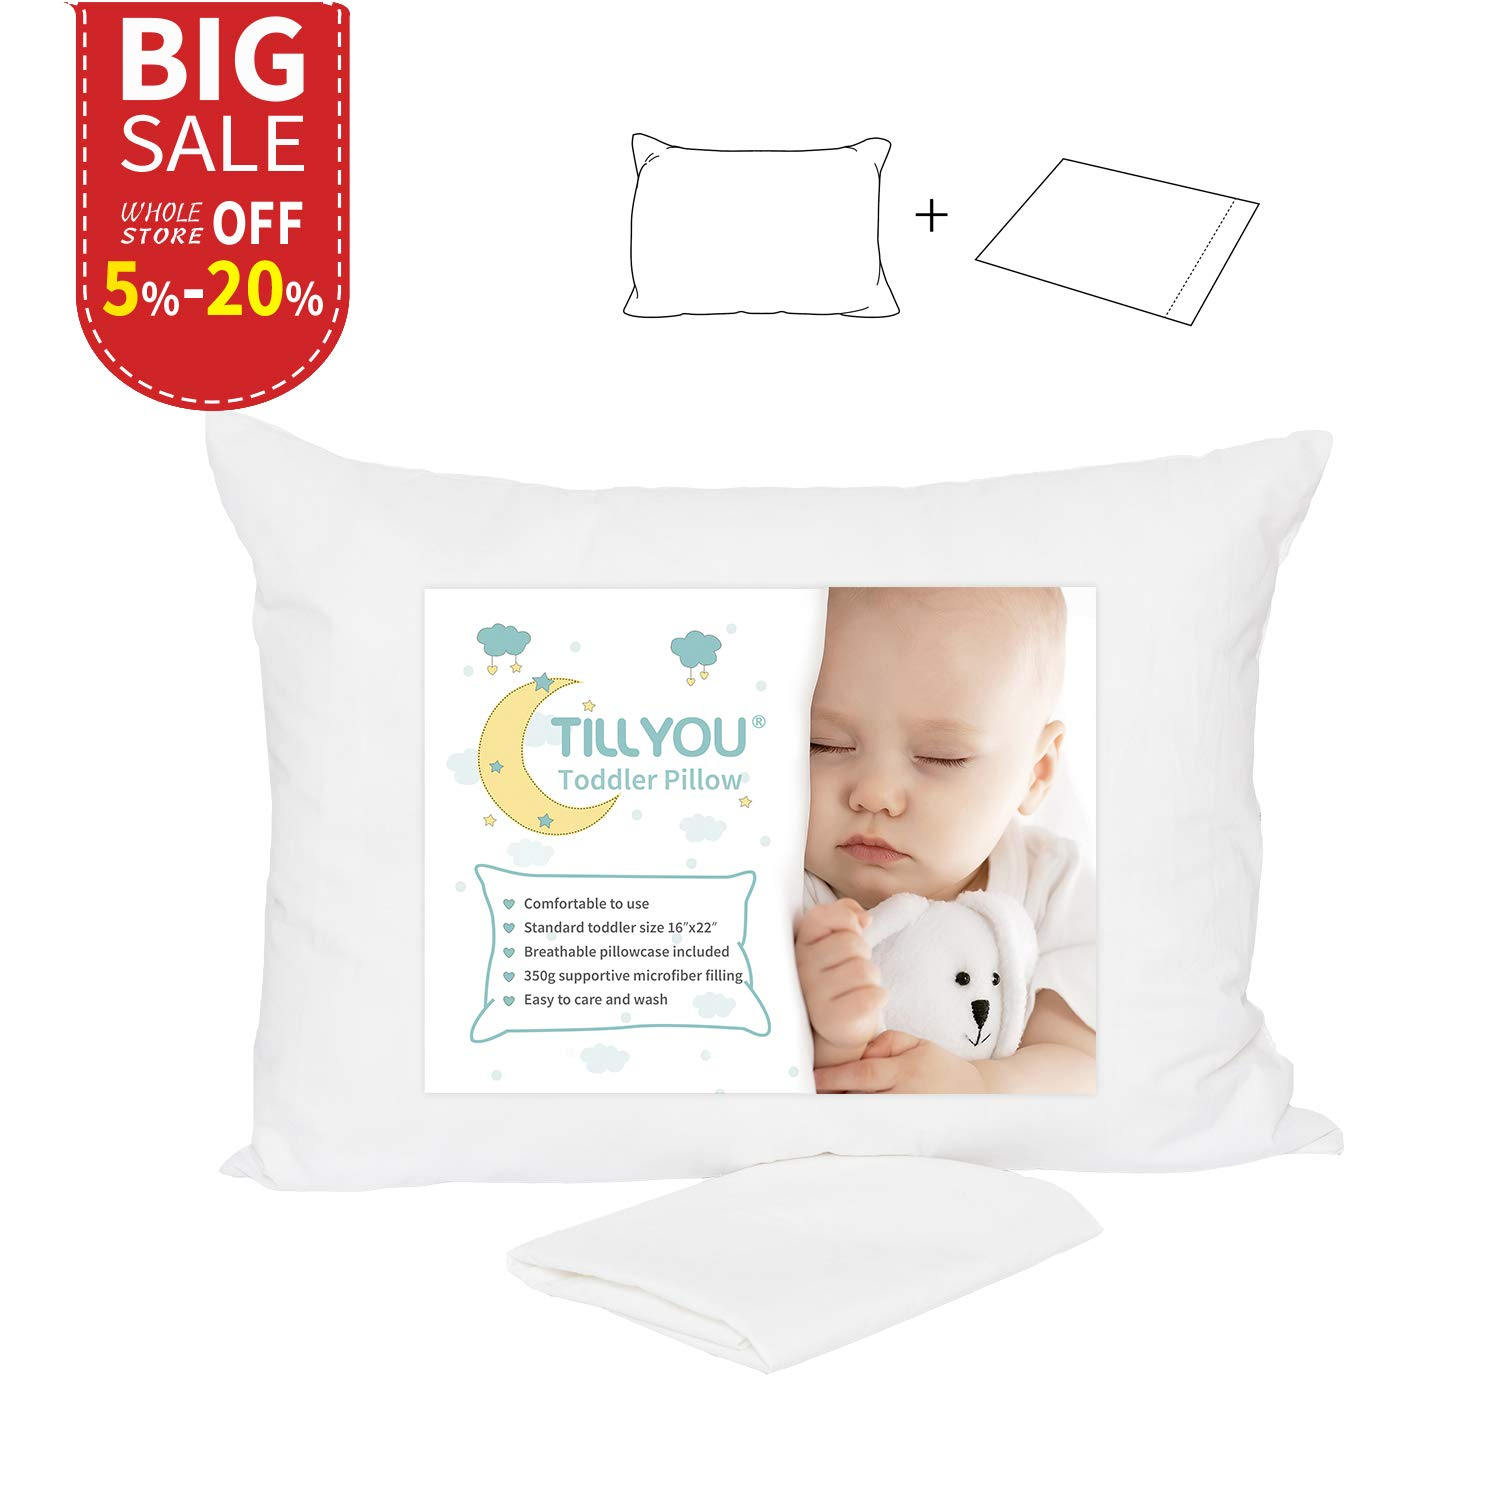 travel size pillow cases Amazon.com: TILLYOU Hypoallergenic Toddler Pillow with Pillowcase  travel size pillow cases